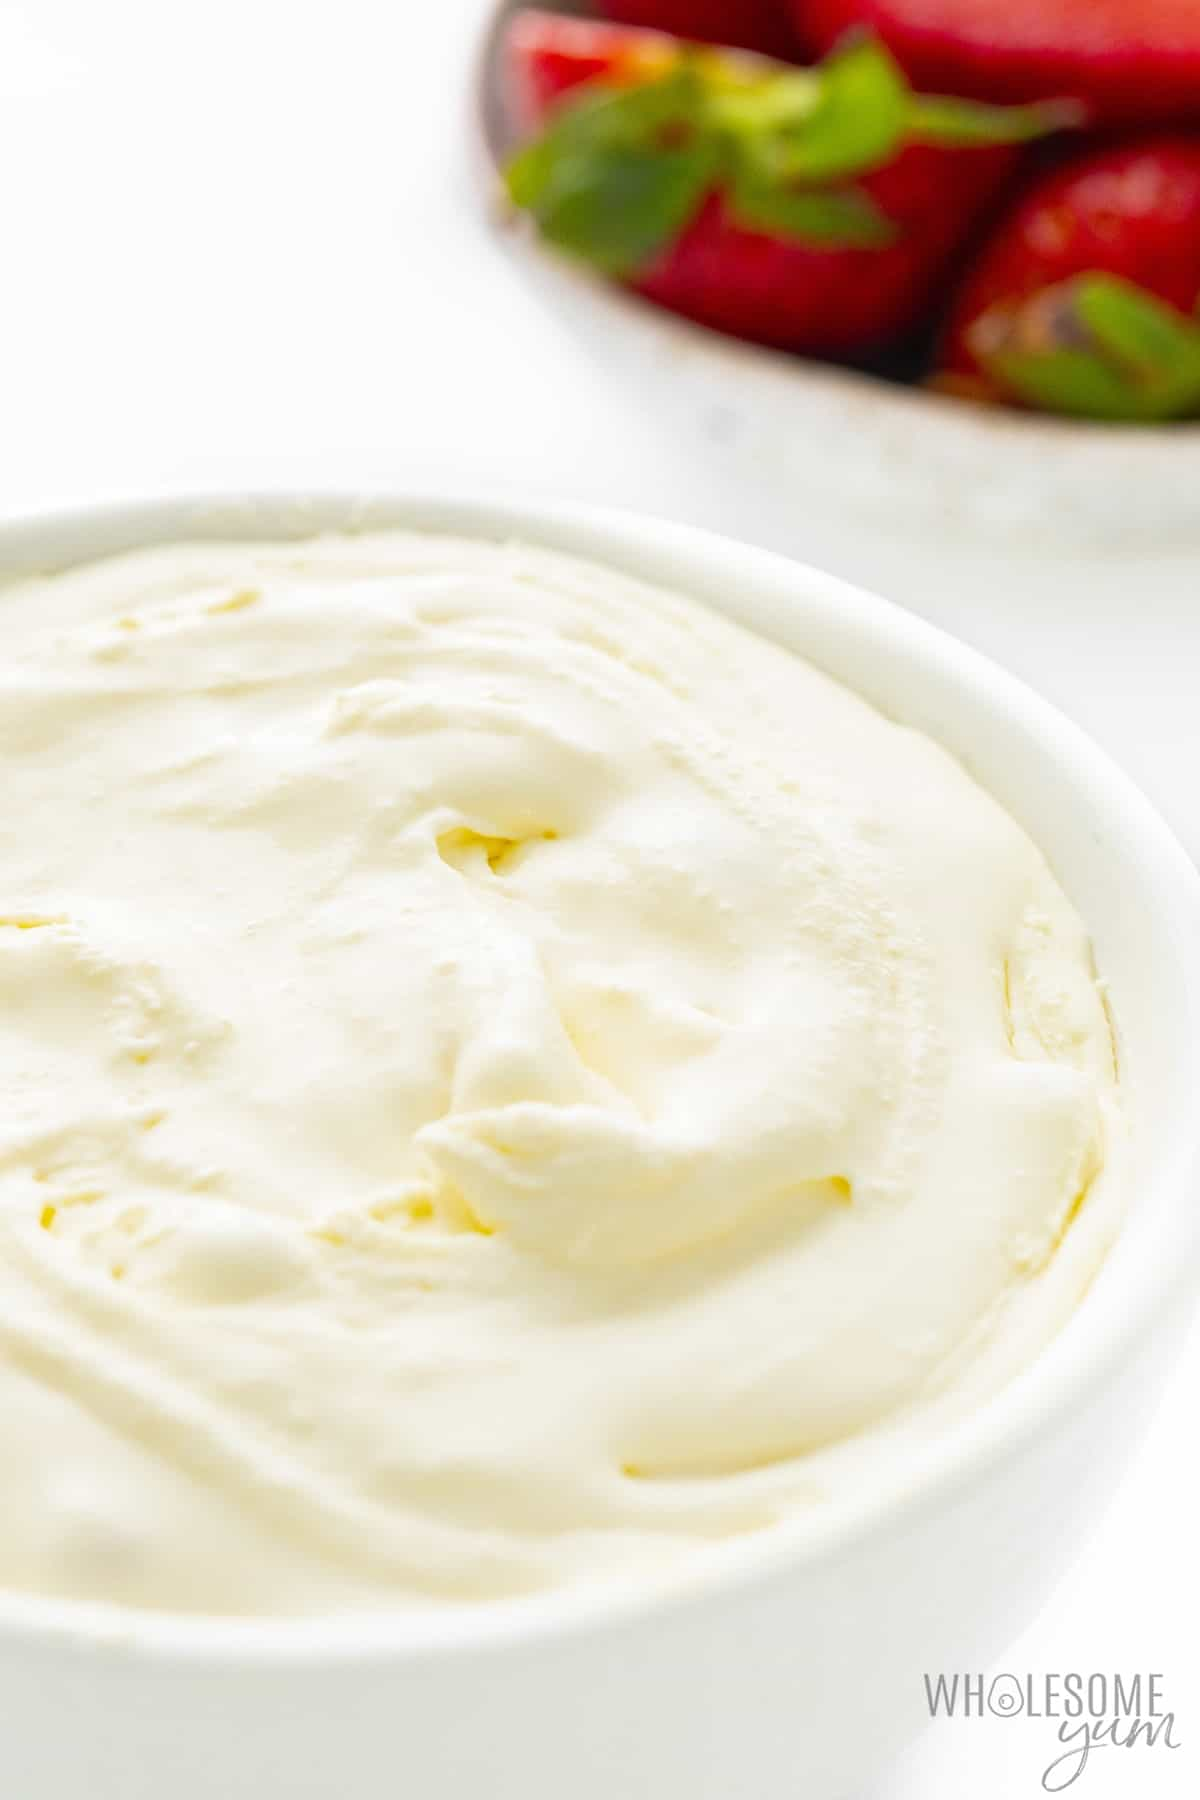 Finished mascarpone cheese in a bowl